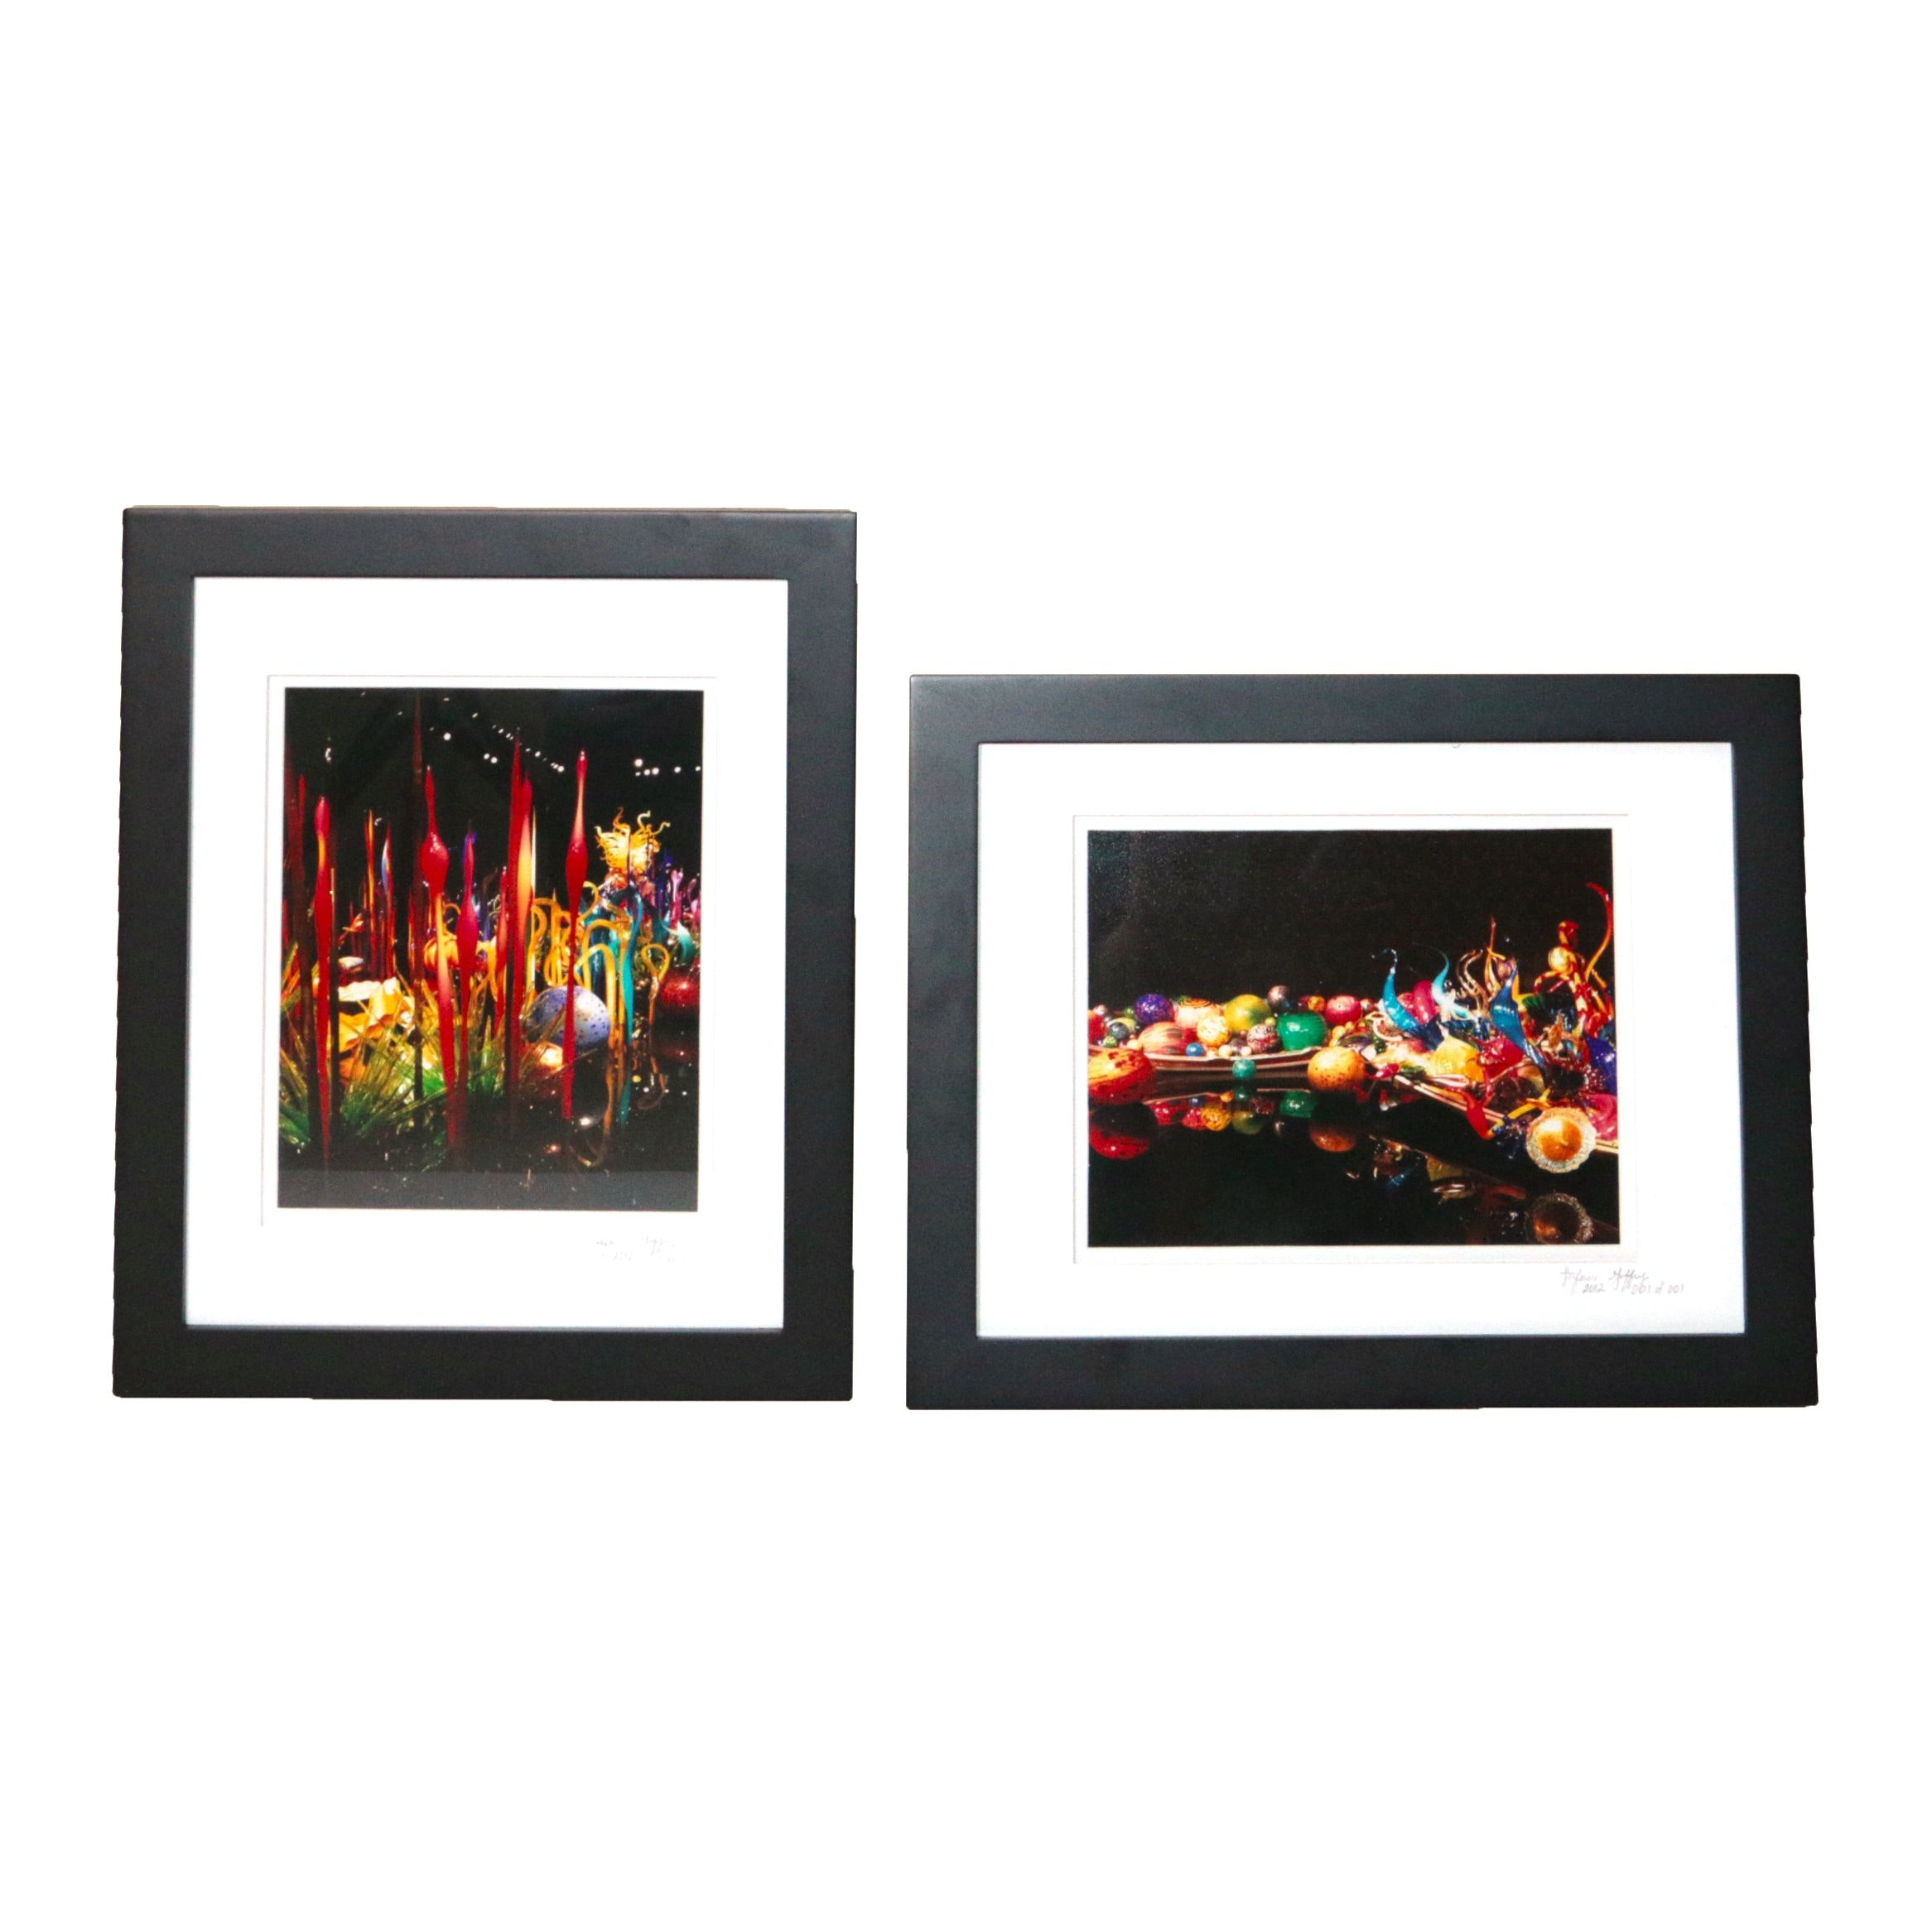 Chihuly Frame Photos